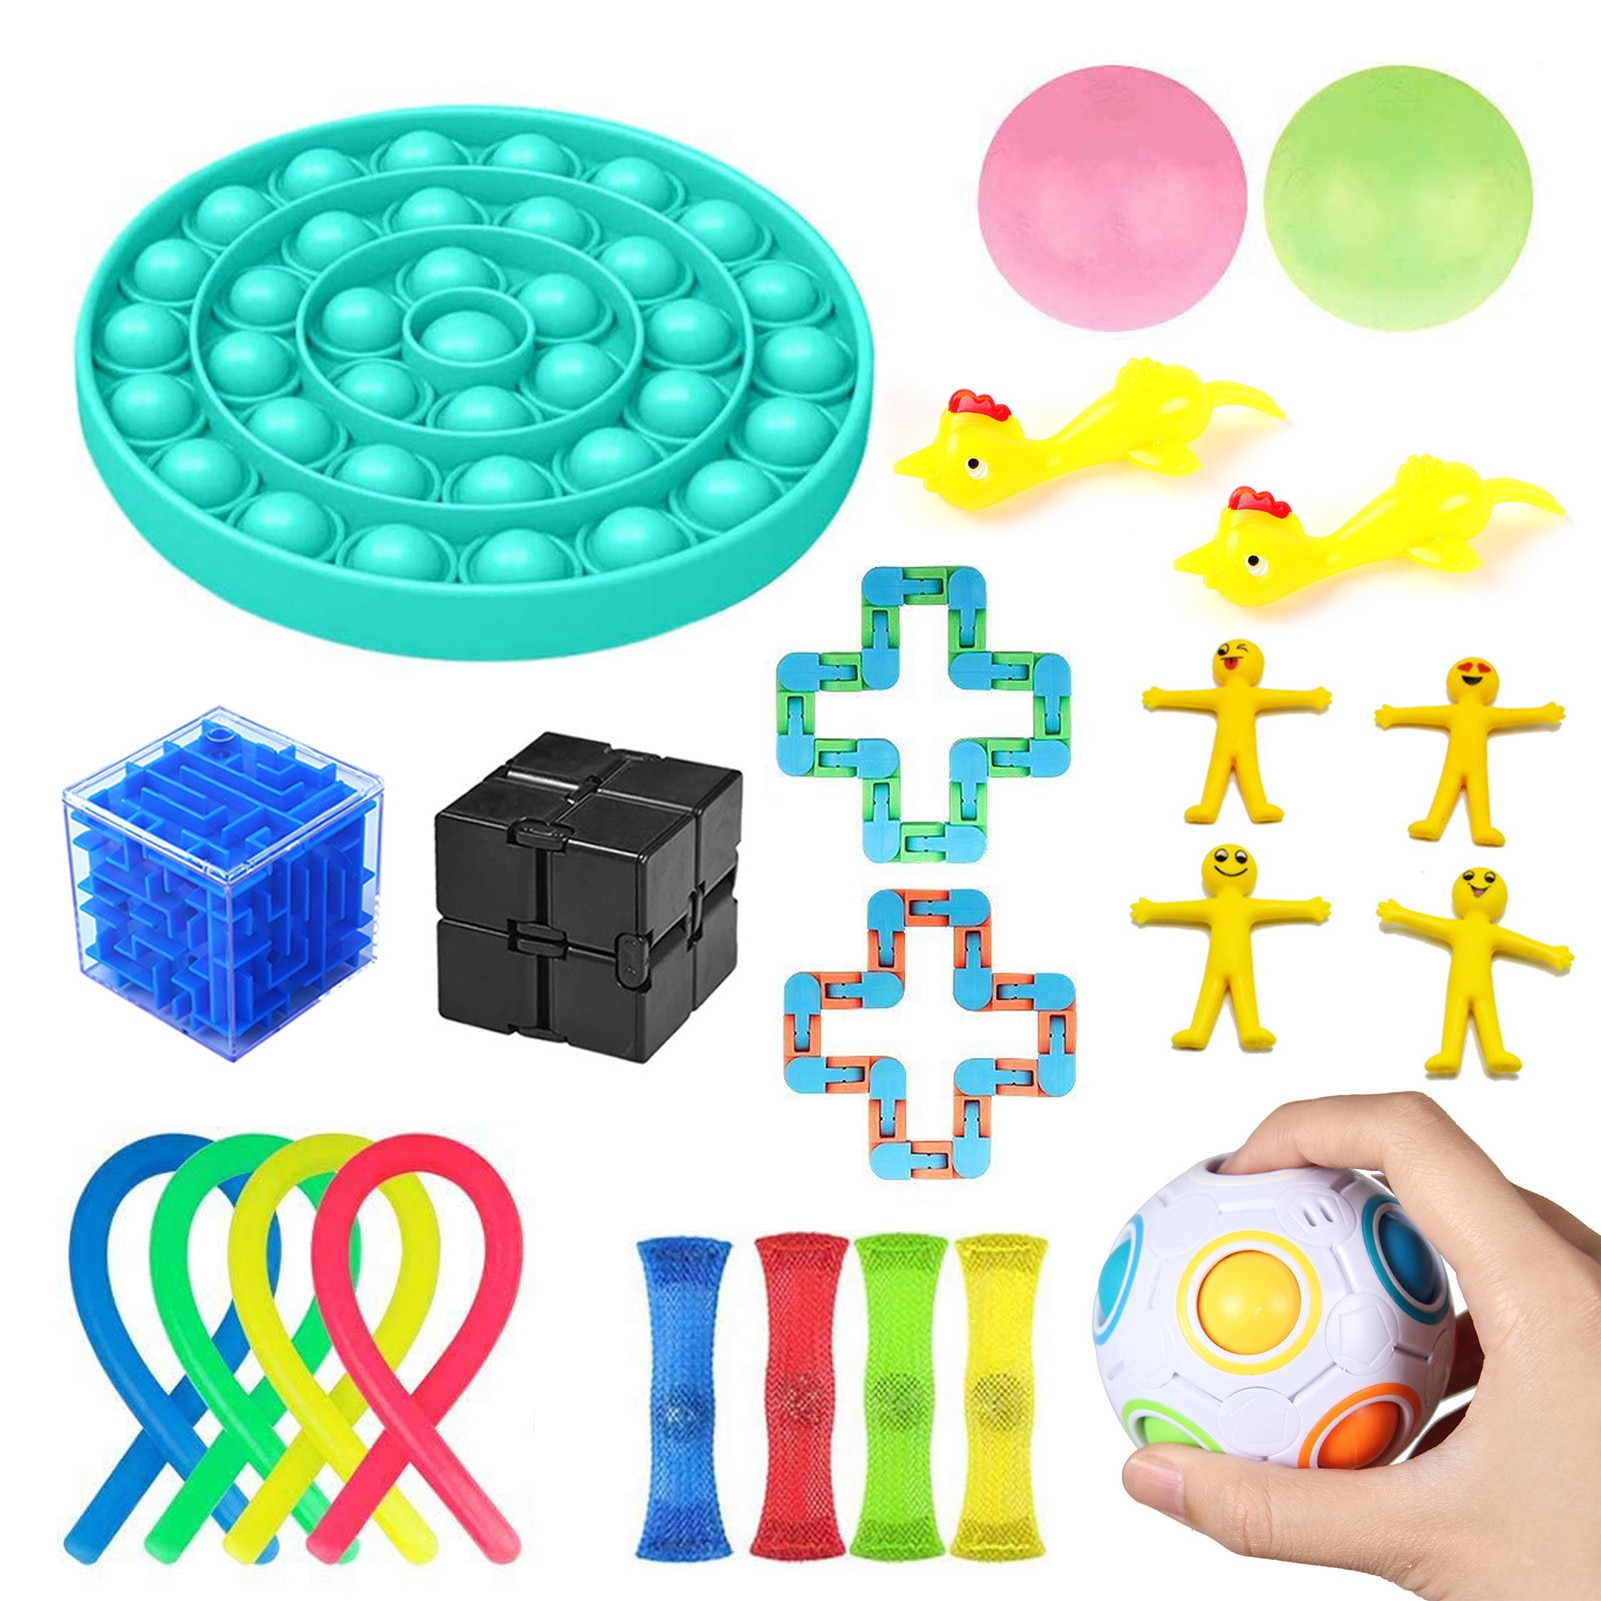 Sensory Fidget Toys Set Wall Stick Ball Stress Reliever Stretchy Strings Mesh ADHD Marble Ball Push Bubble Autism Anxiet Toys enlarge